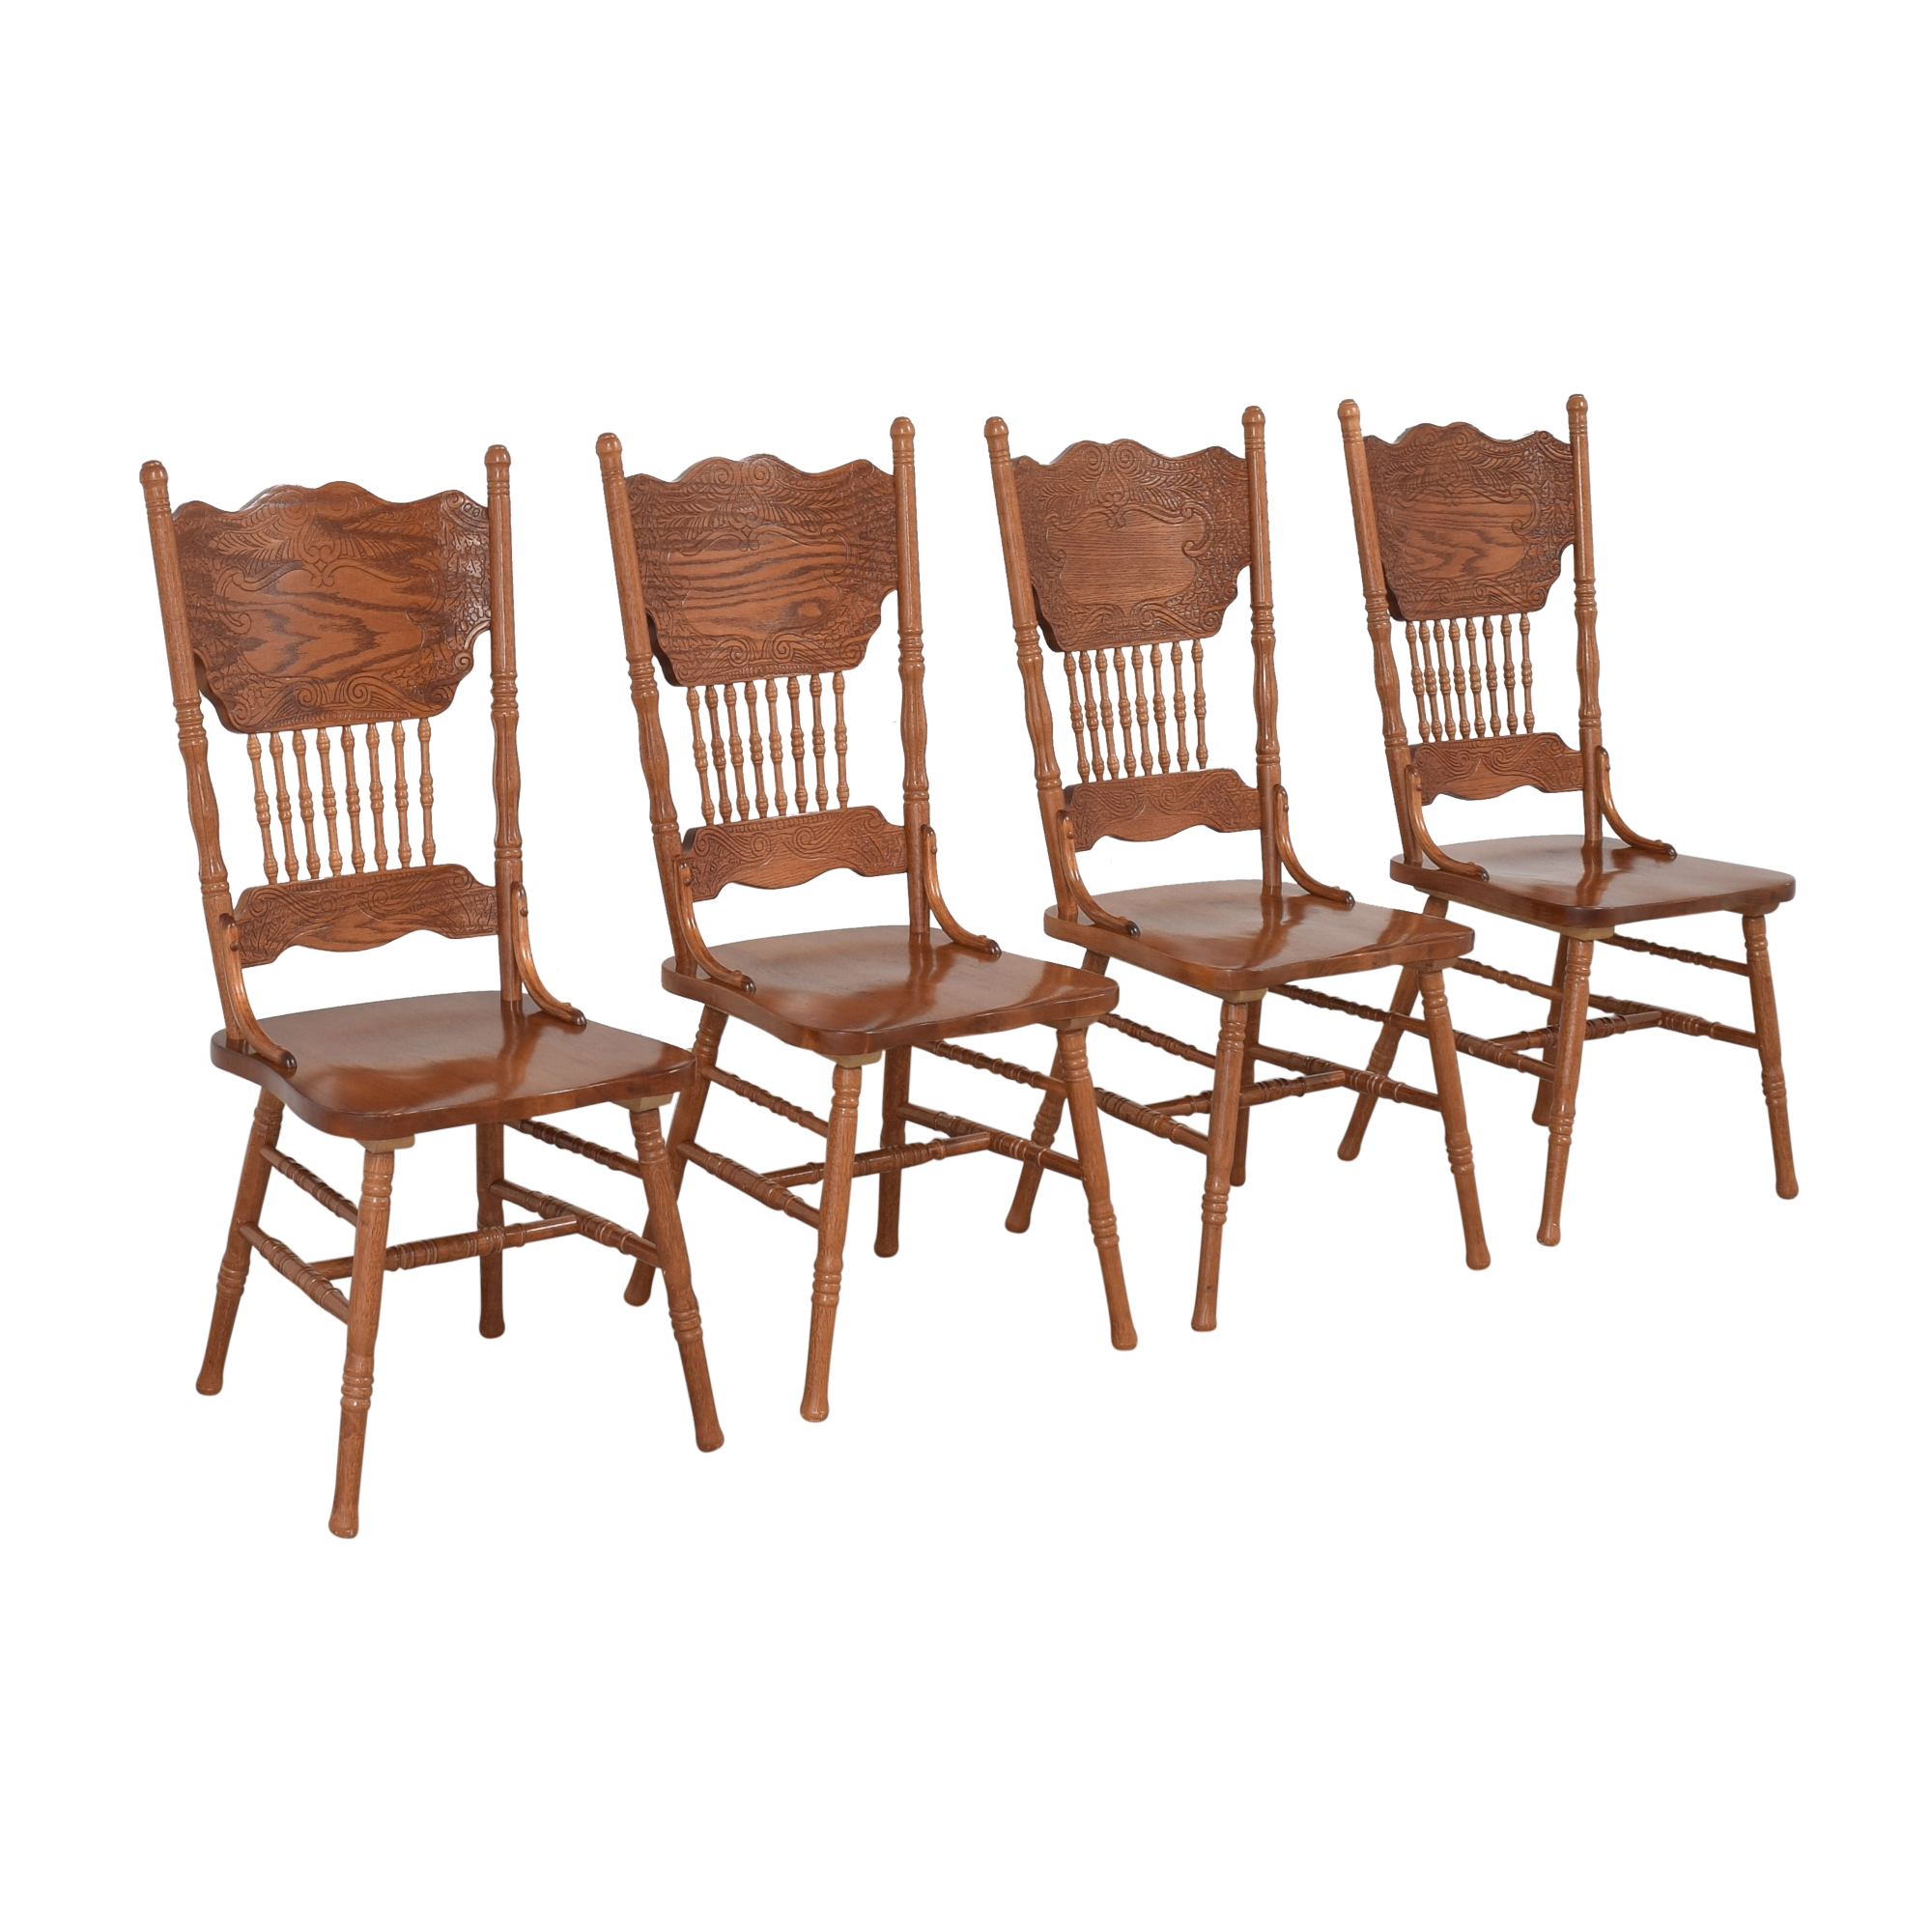 Poundex Poundex Pressback Dining Chairs ct